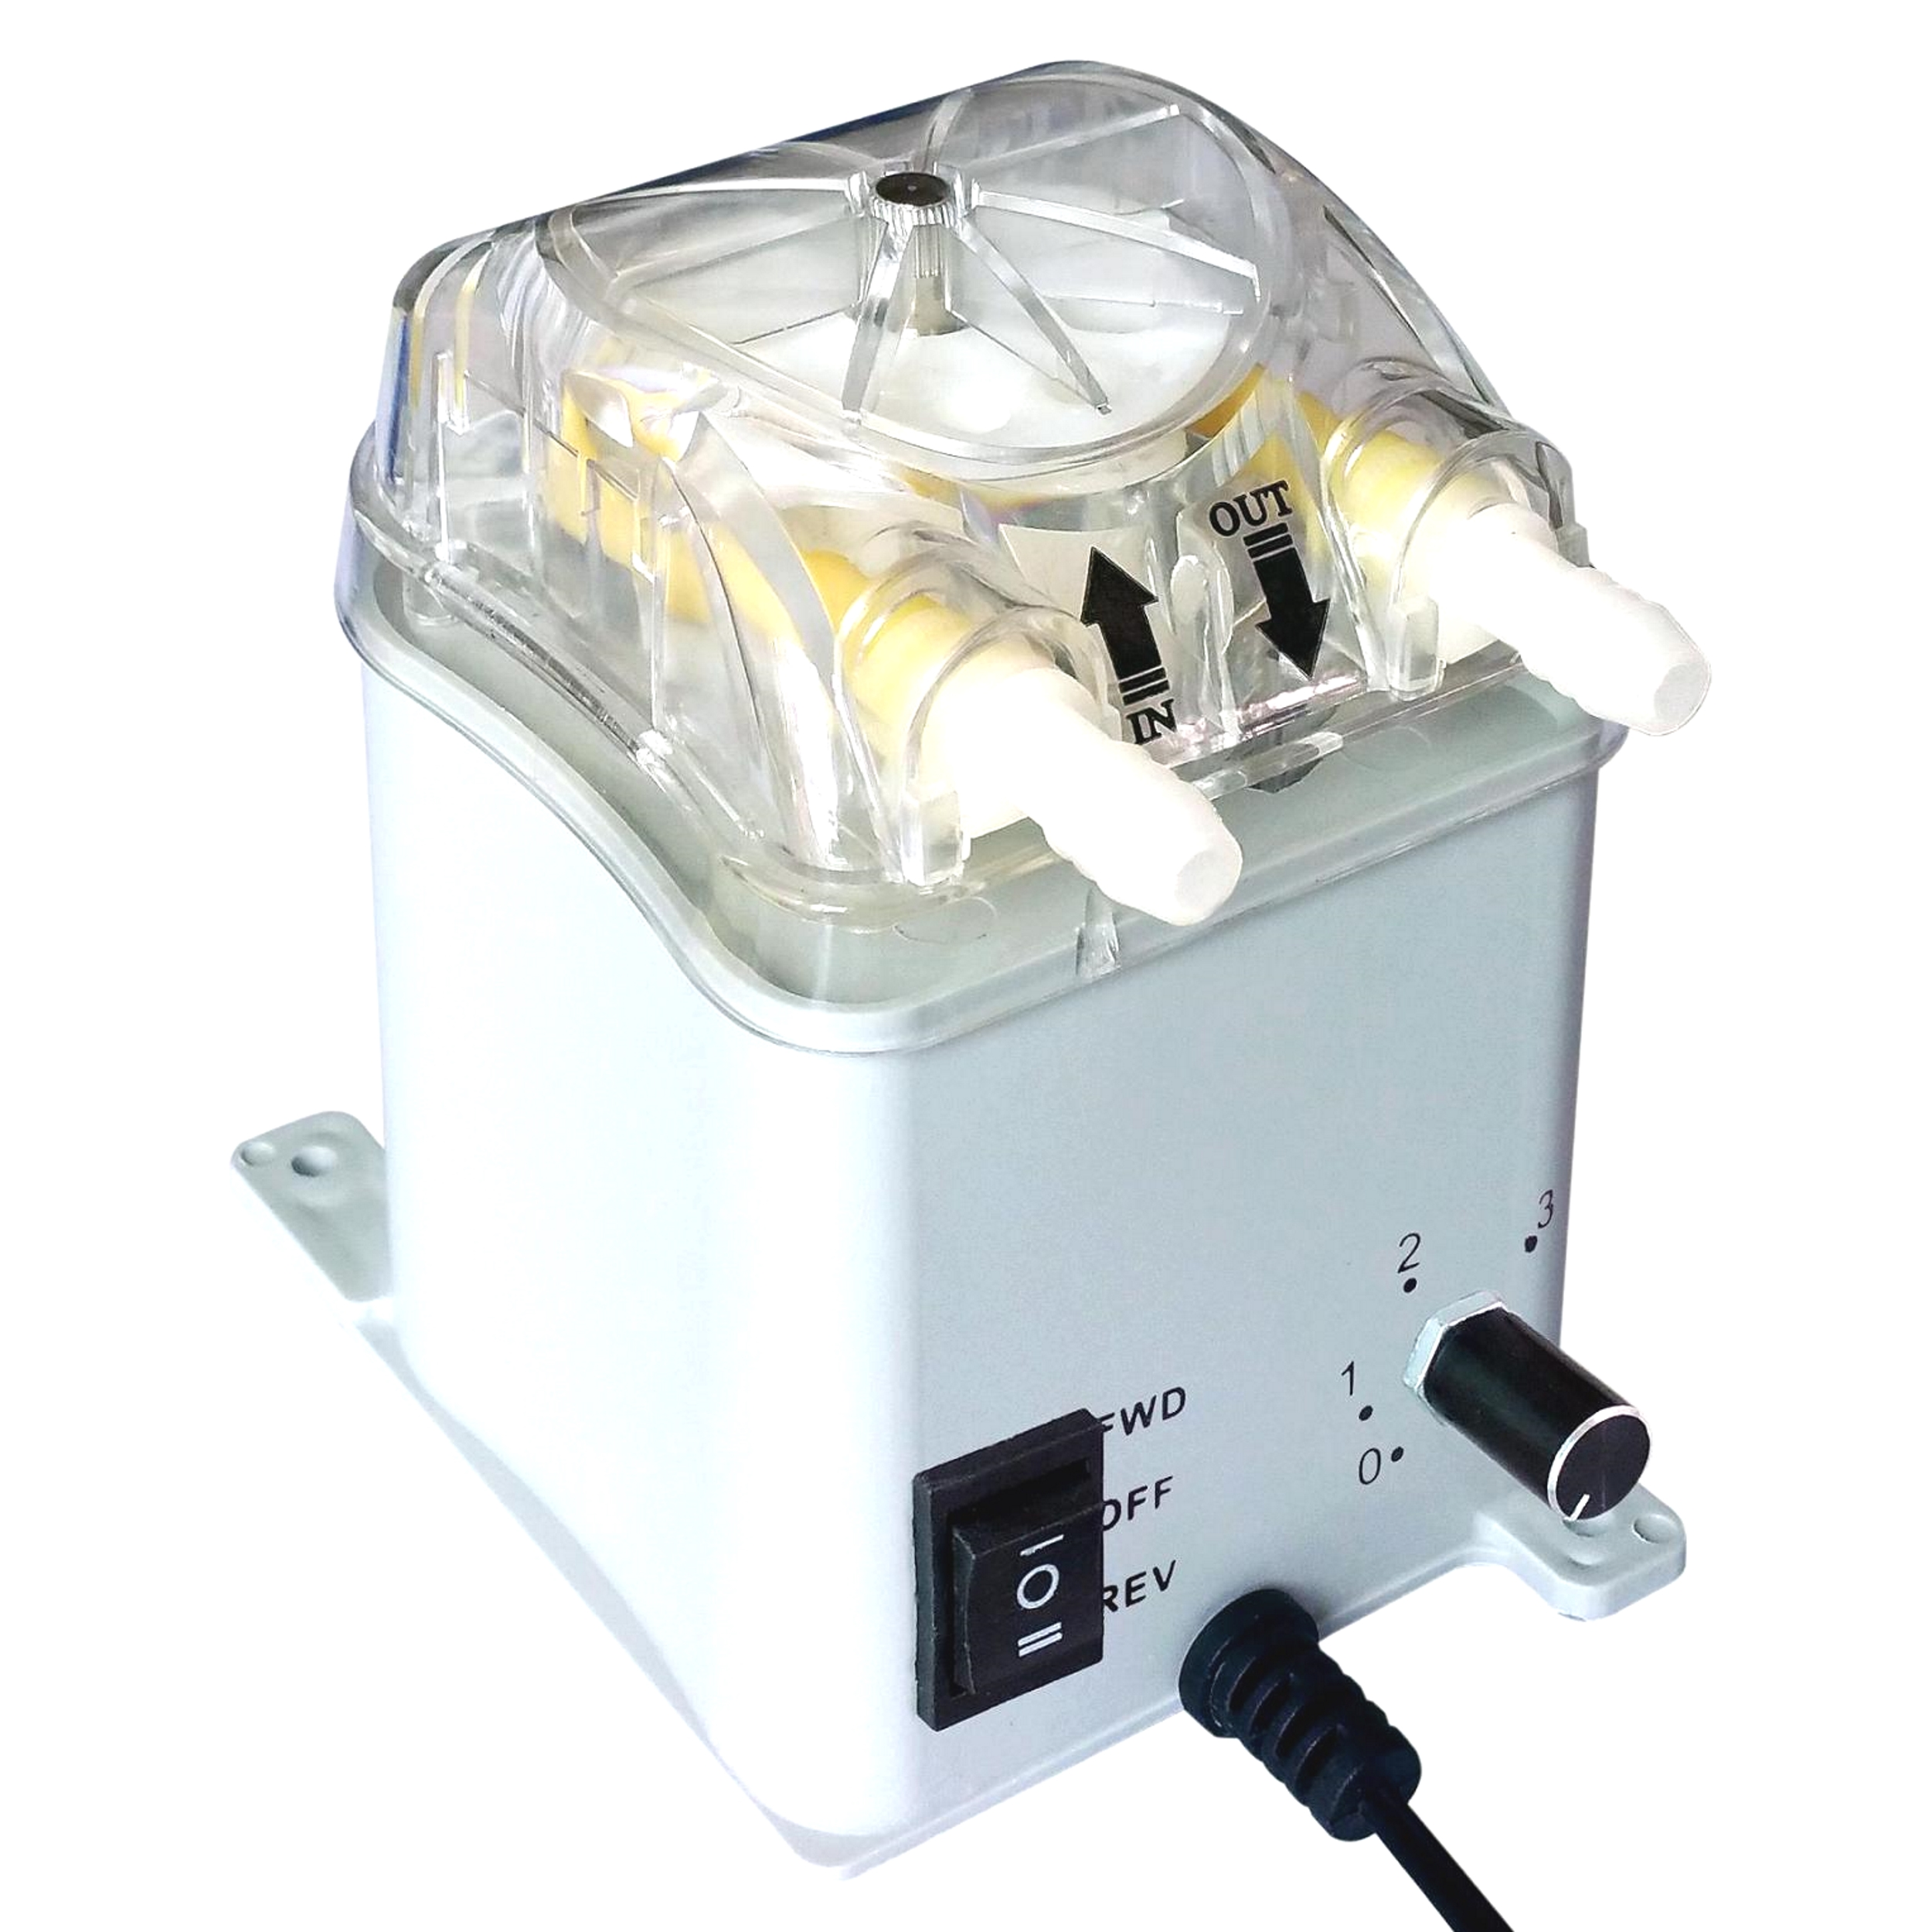 50-400ml/min Adjustable, Honlite 24V Brushless Peristaltic Pump With Exchangeable Pump Head And PharMed Peristaltic Tube